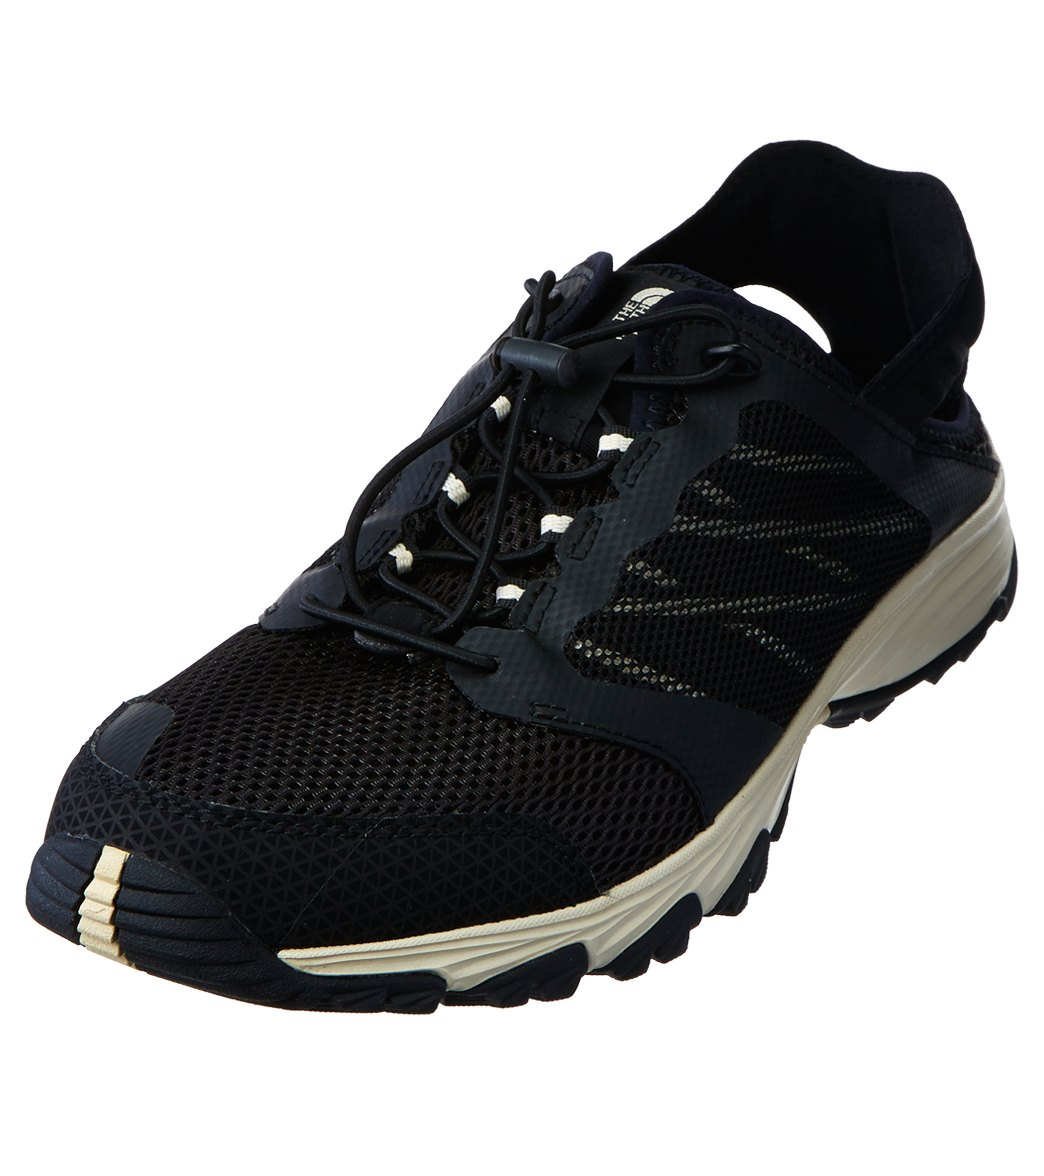 95a7b900be07 The North Face Men s Lightwave Amphibous II Water Shoe at SwimOutlet.com -  Free Shipping